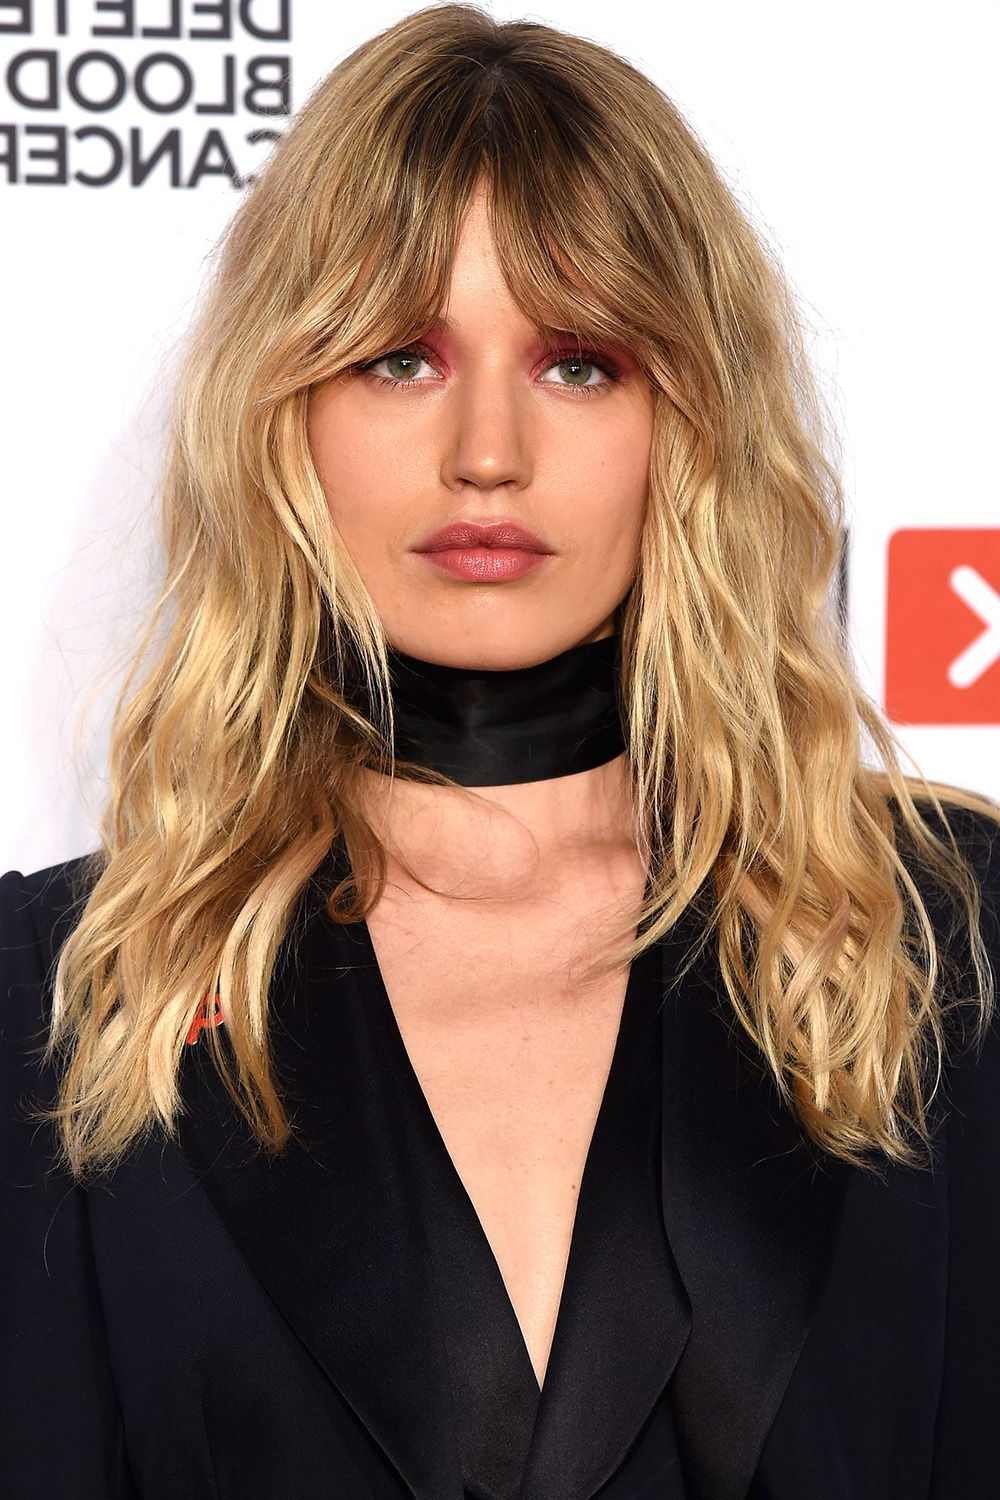 40 Best Medium Hairstyles – Celebrities With Shoulder Length Haircuts In Most Recently Released Medium Hairstyles For Small Faces (View 11 of 20)